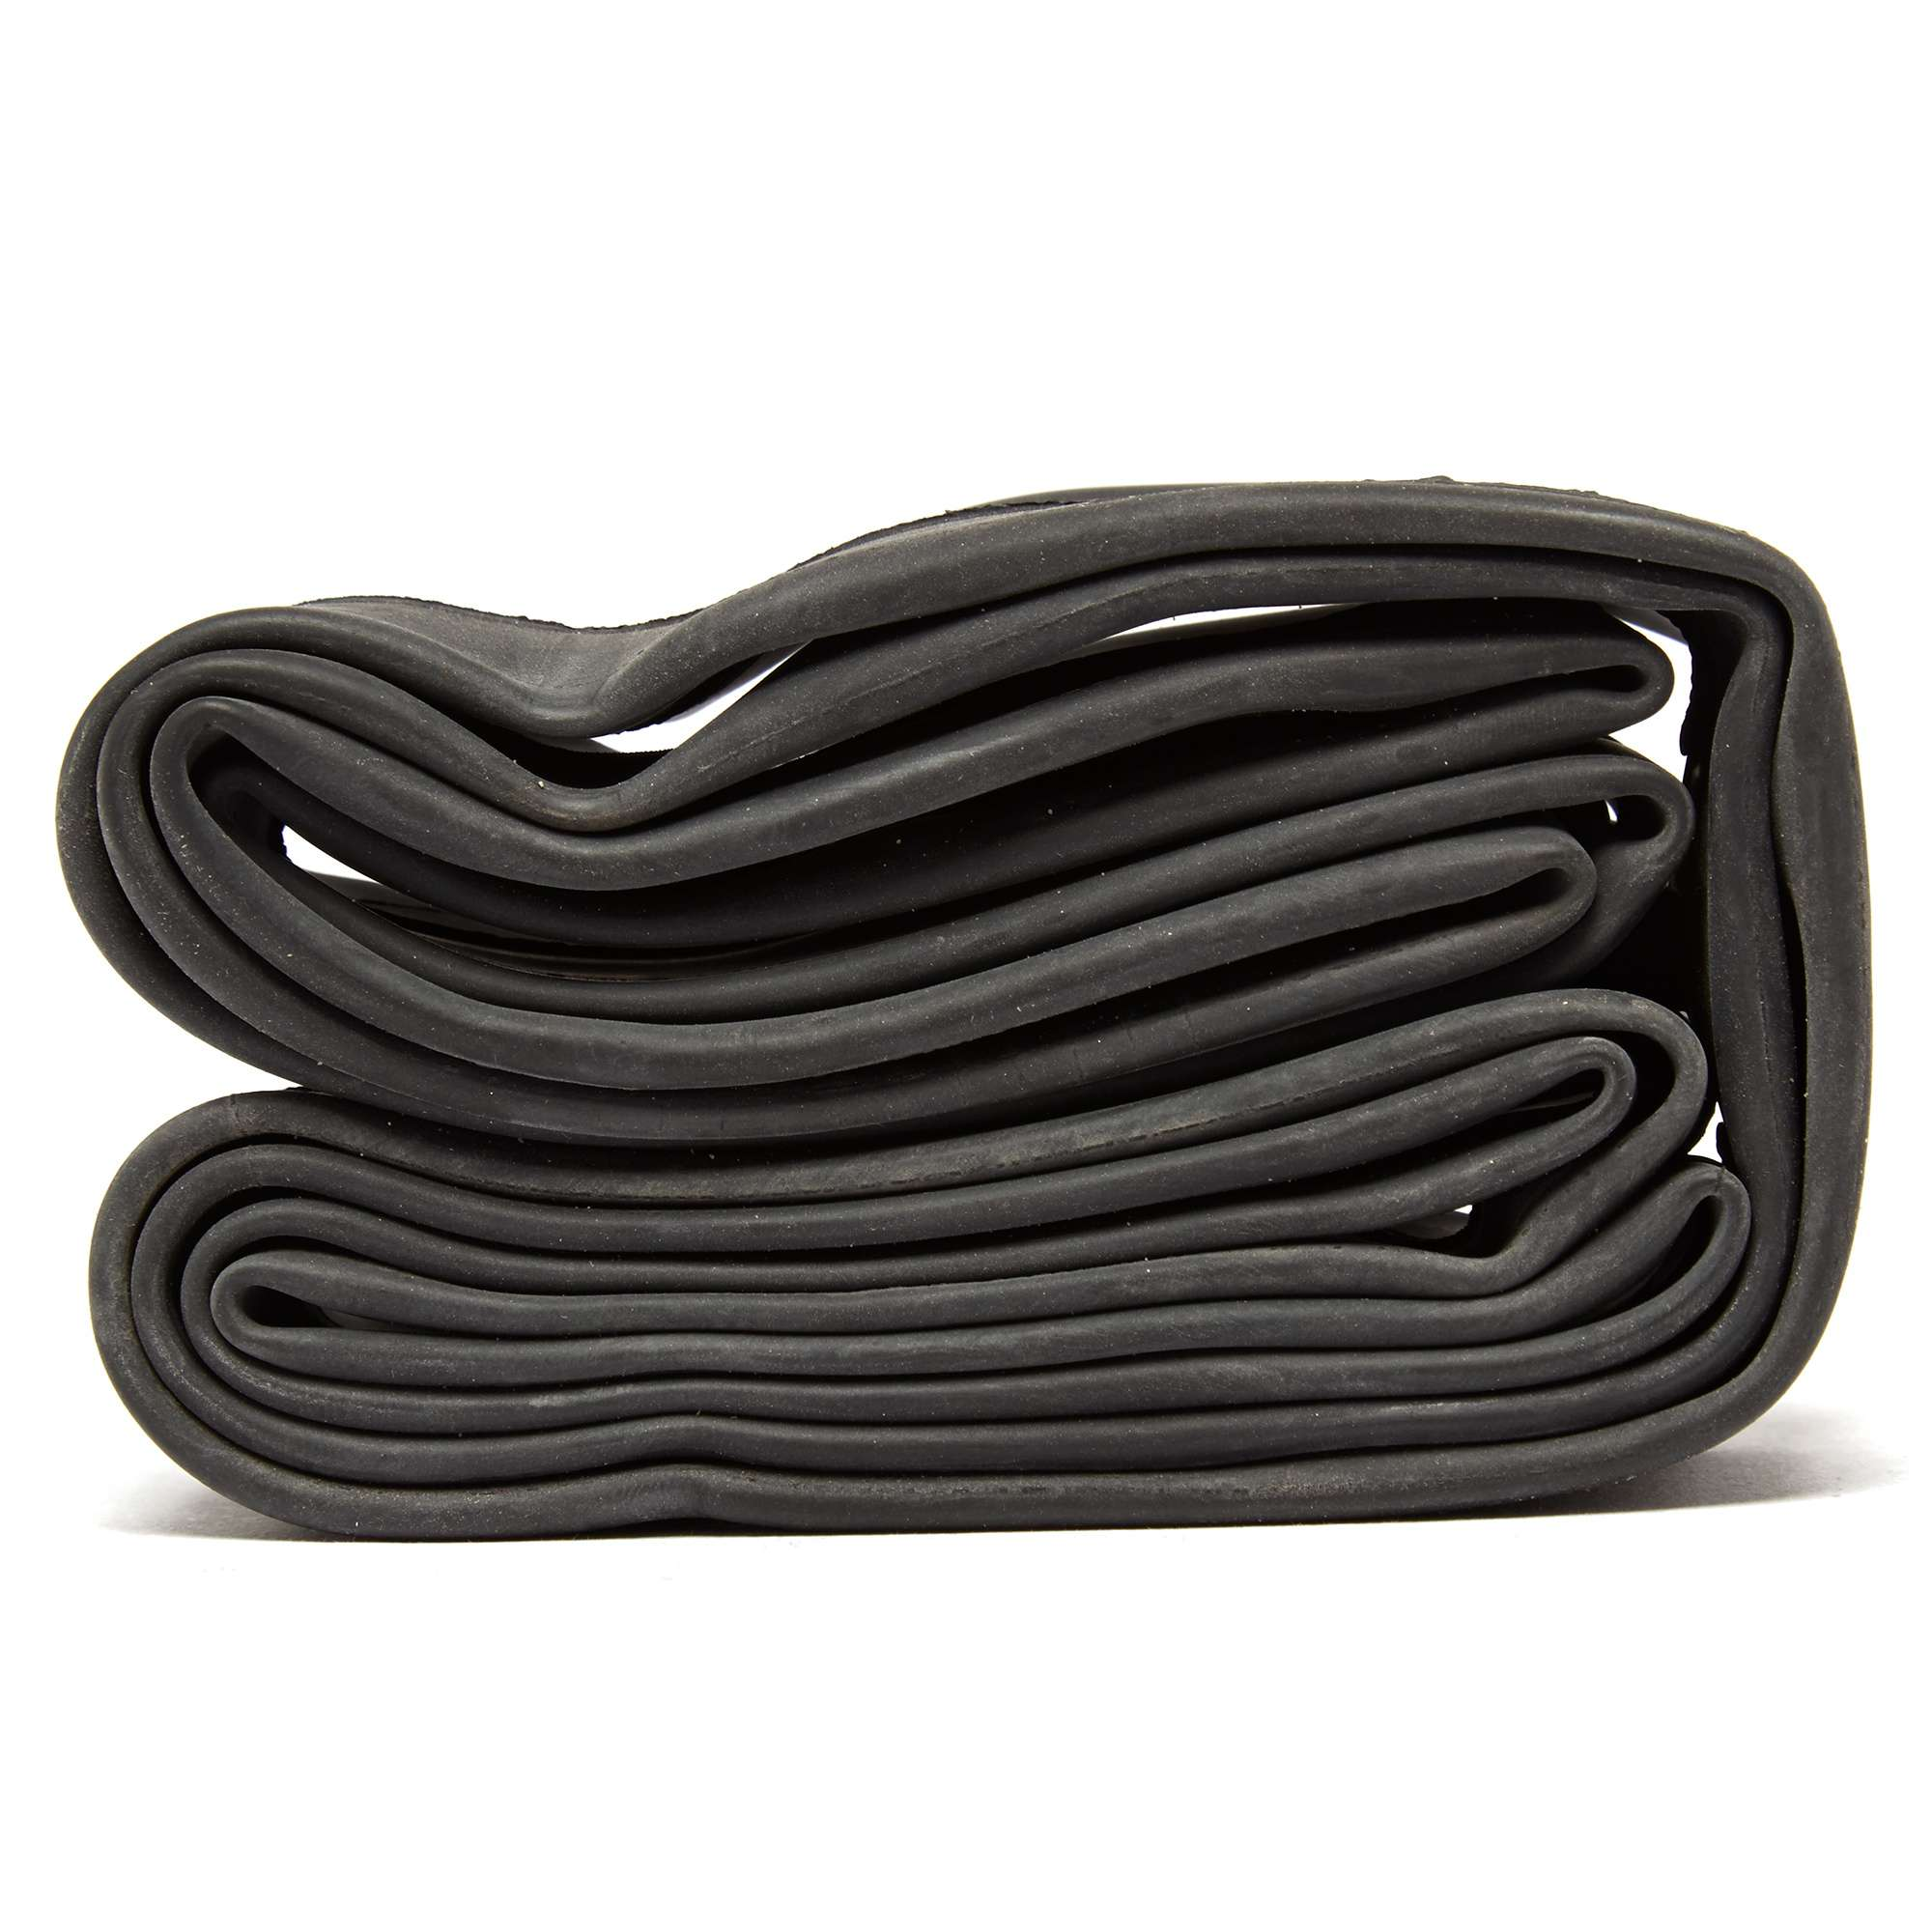 "WILDTRACK 26"" Inner Tube"